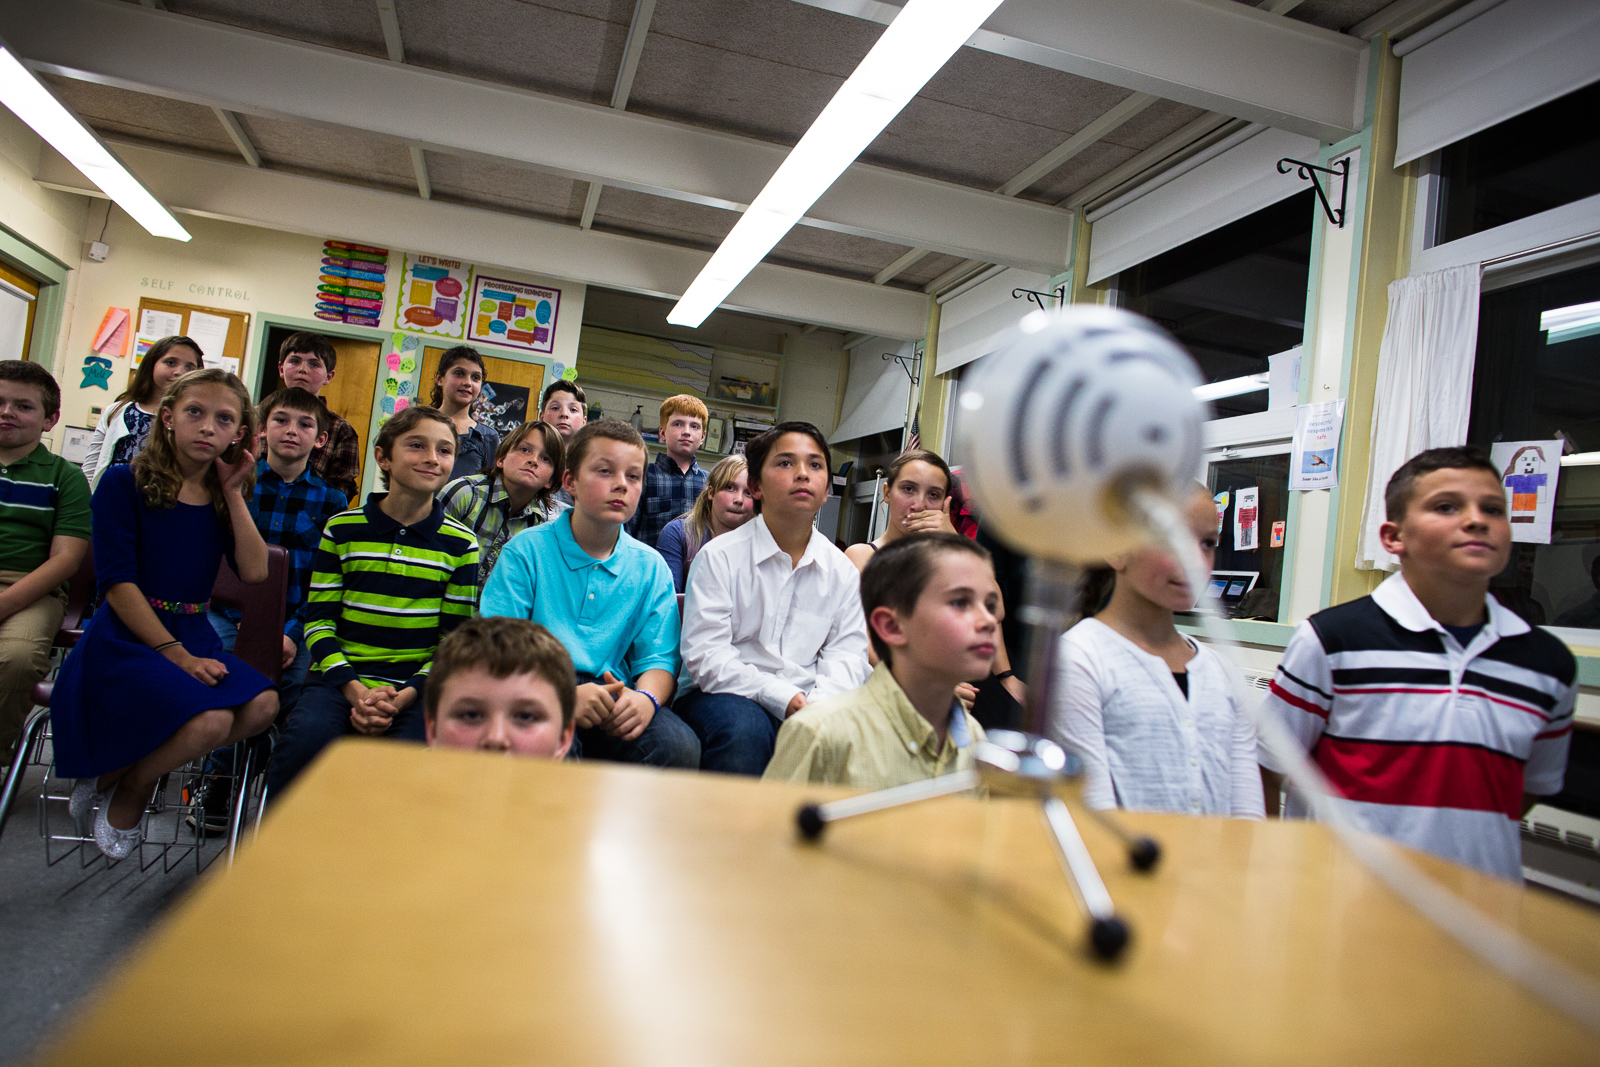 Teacher Cassie Underwood's fifth grade sudents meet Korean students for the first time over Skype at Fletcher Elementary in Fletcher, Vermont on Thursday, October 20, 2016. by Monica Donovan for the George Lucas Educational Foundation